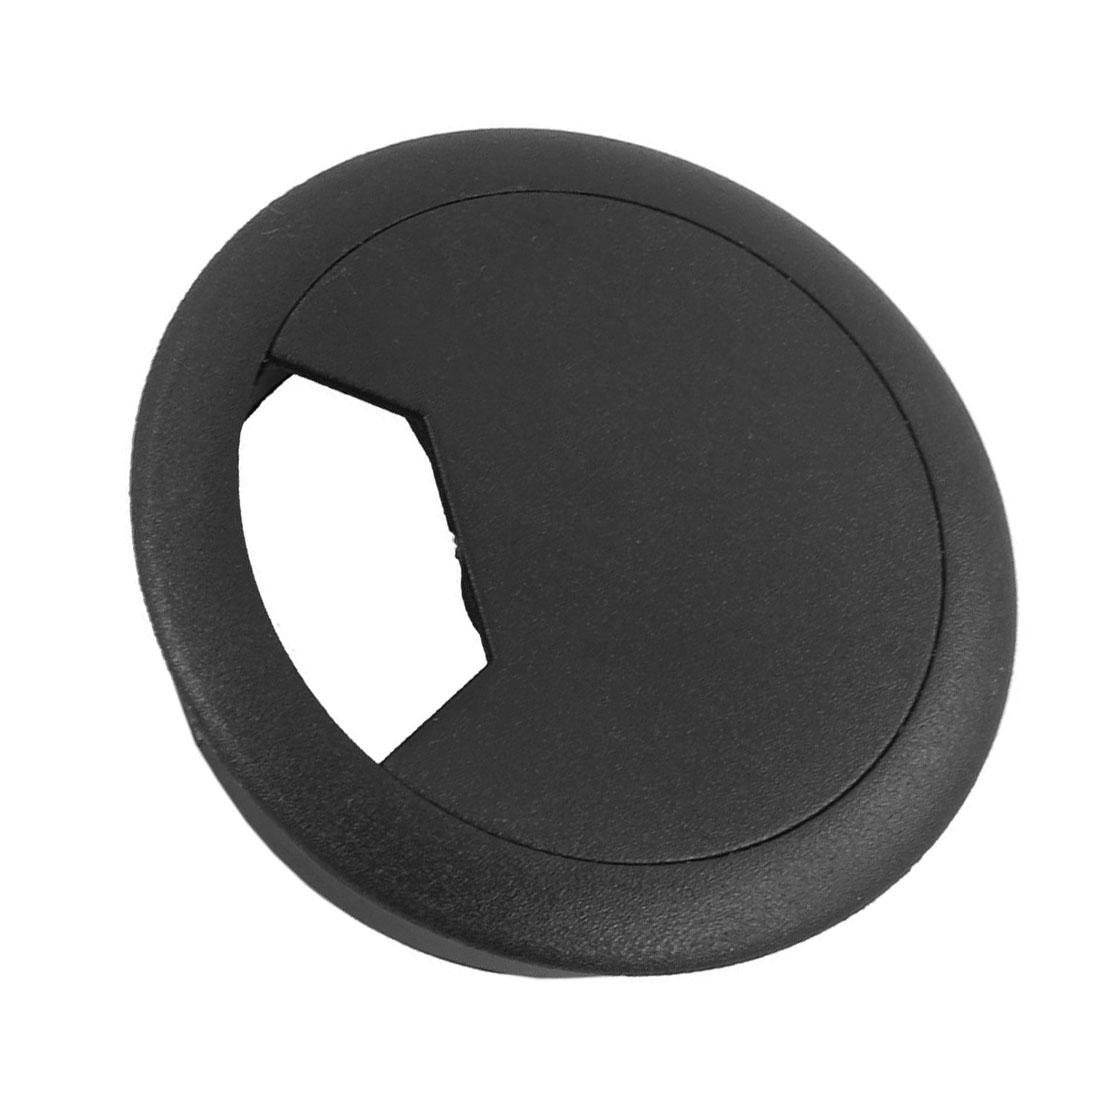 2018 Szs Hot 50mm Diameter Desk Wire Cord Cable Grommets Hole Cover Black From Bdhome 20 15 Dhgate Com